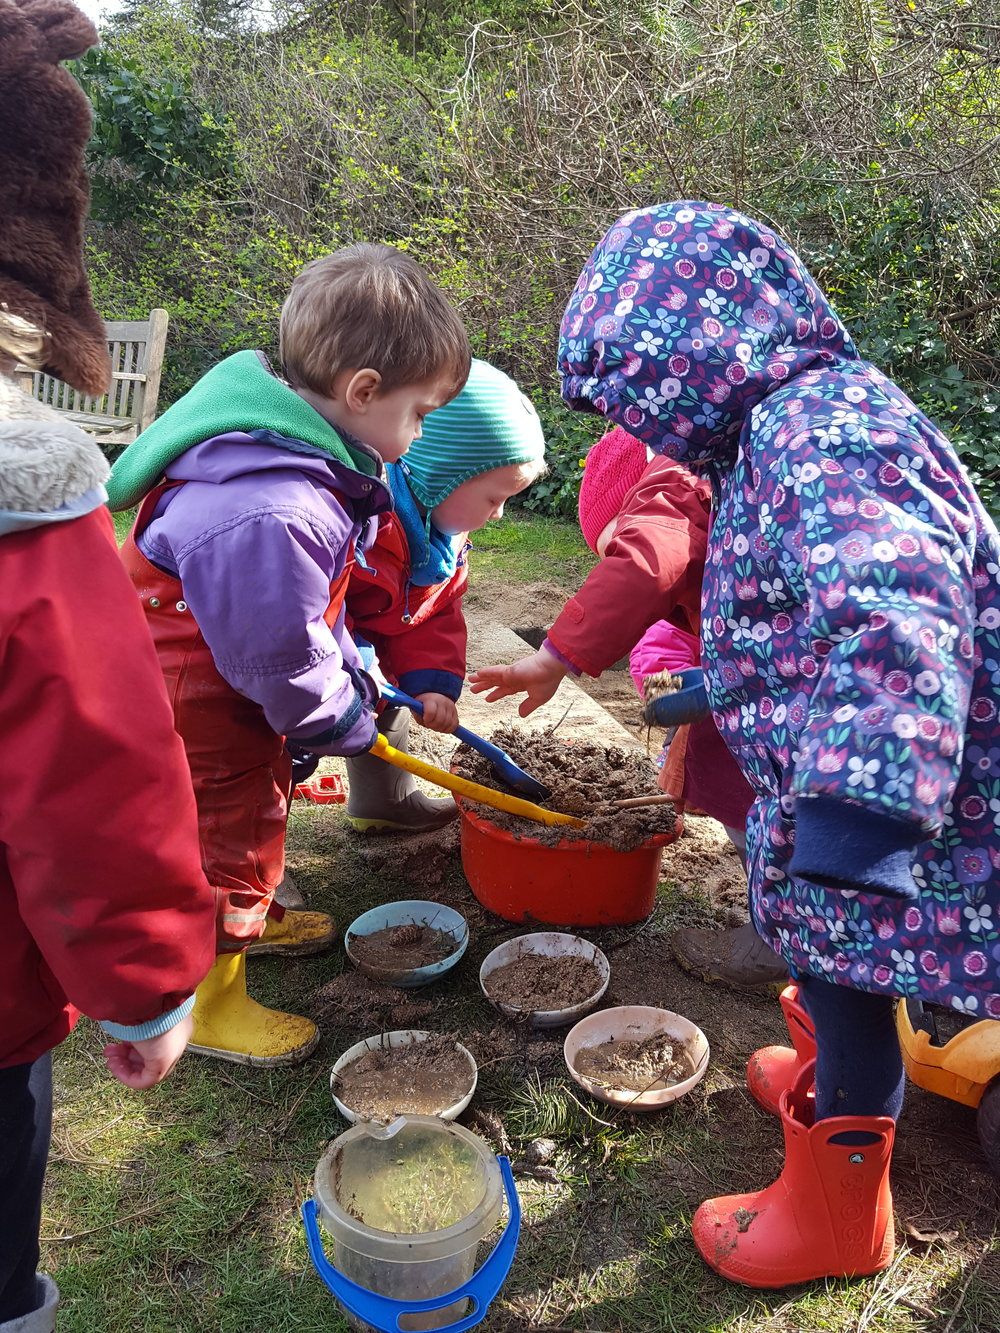 A joyful mud pie play session was enjoyed immensely!